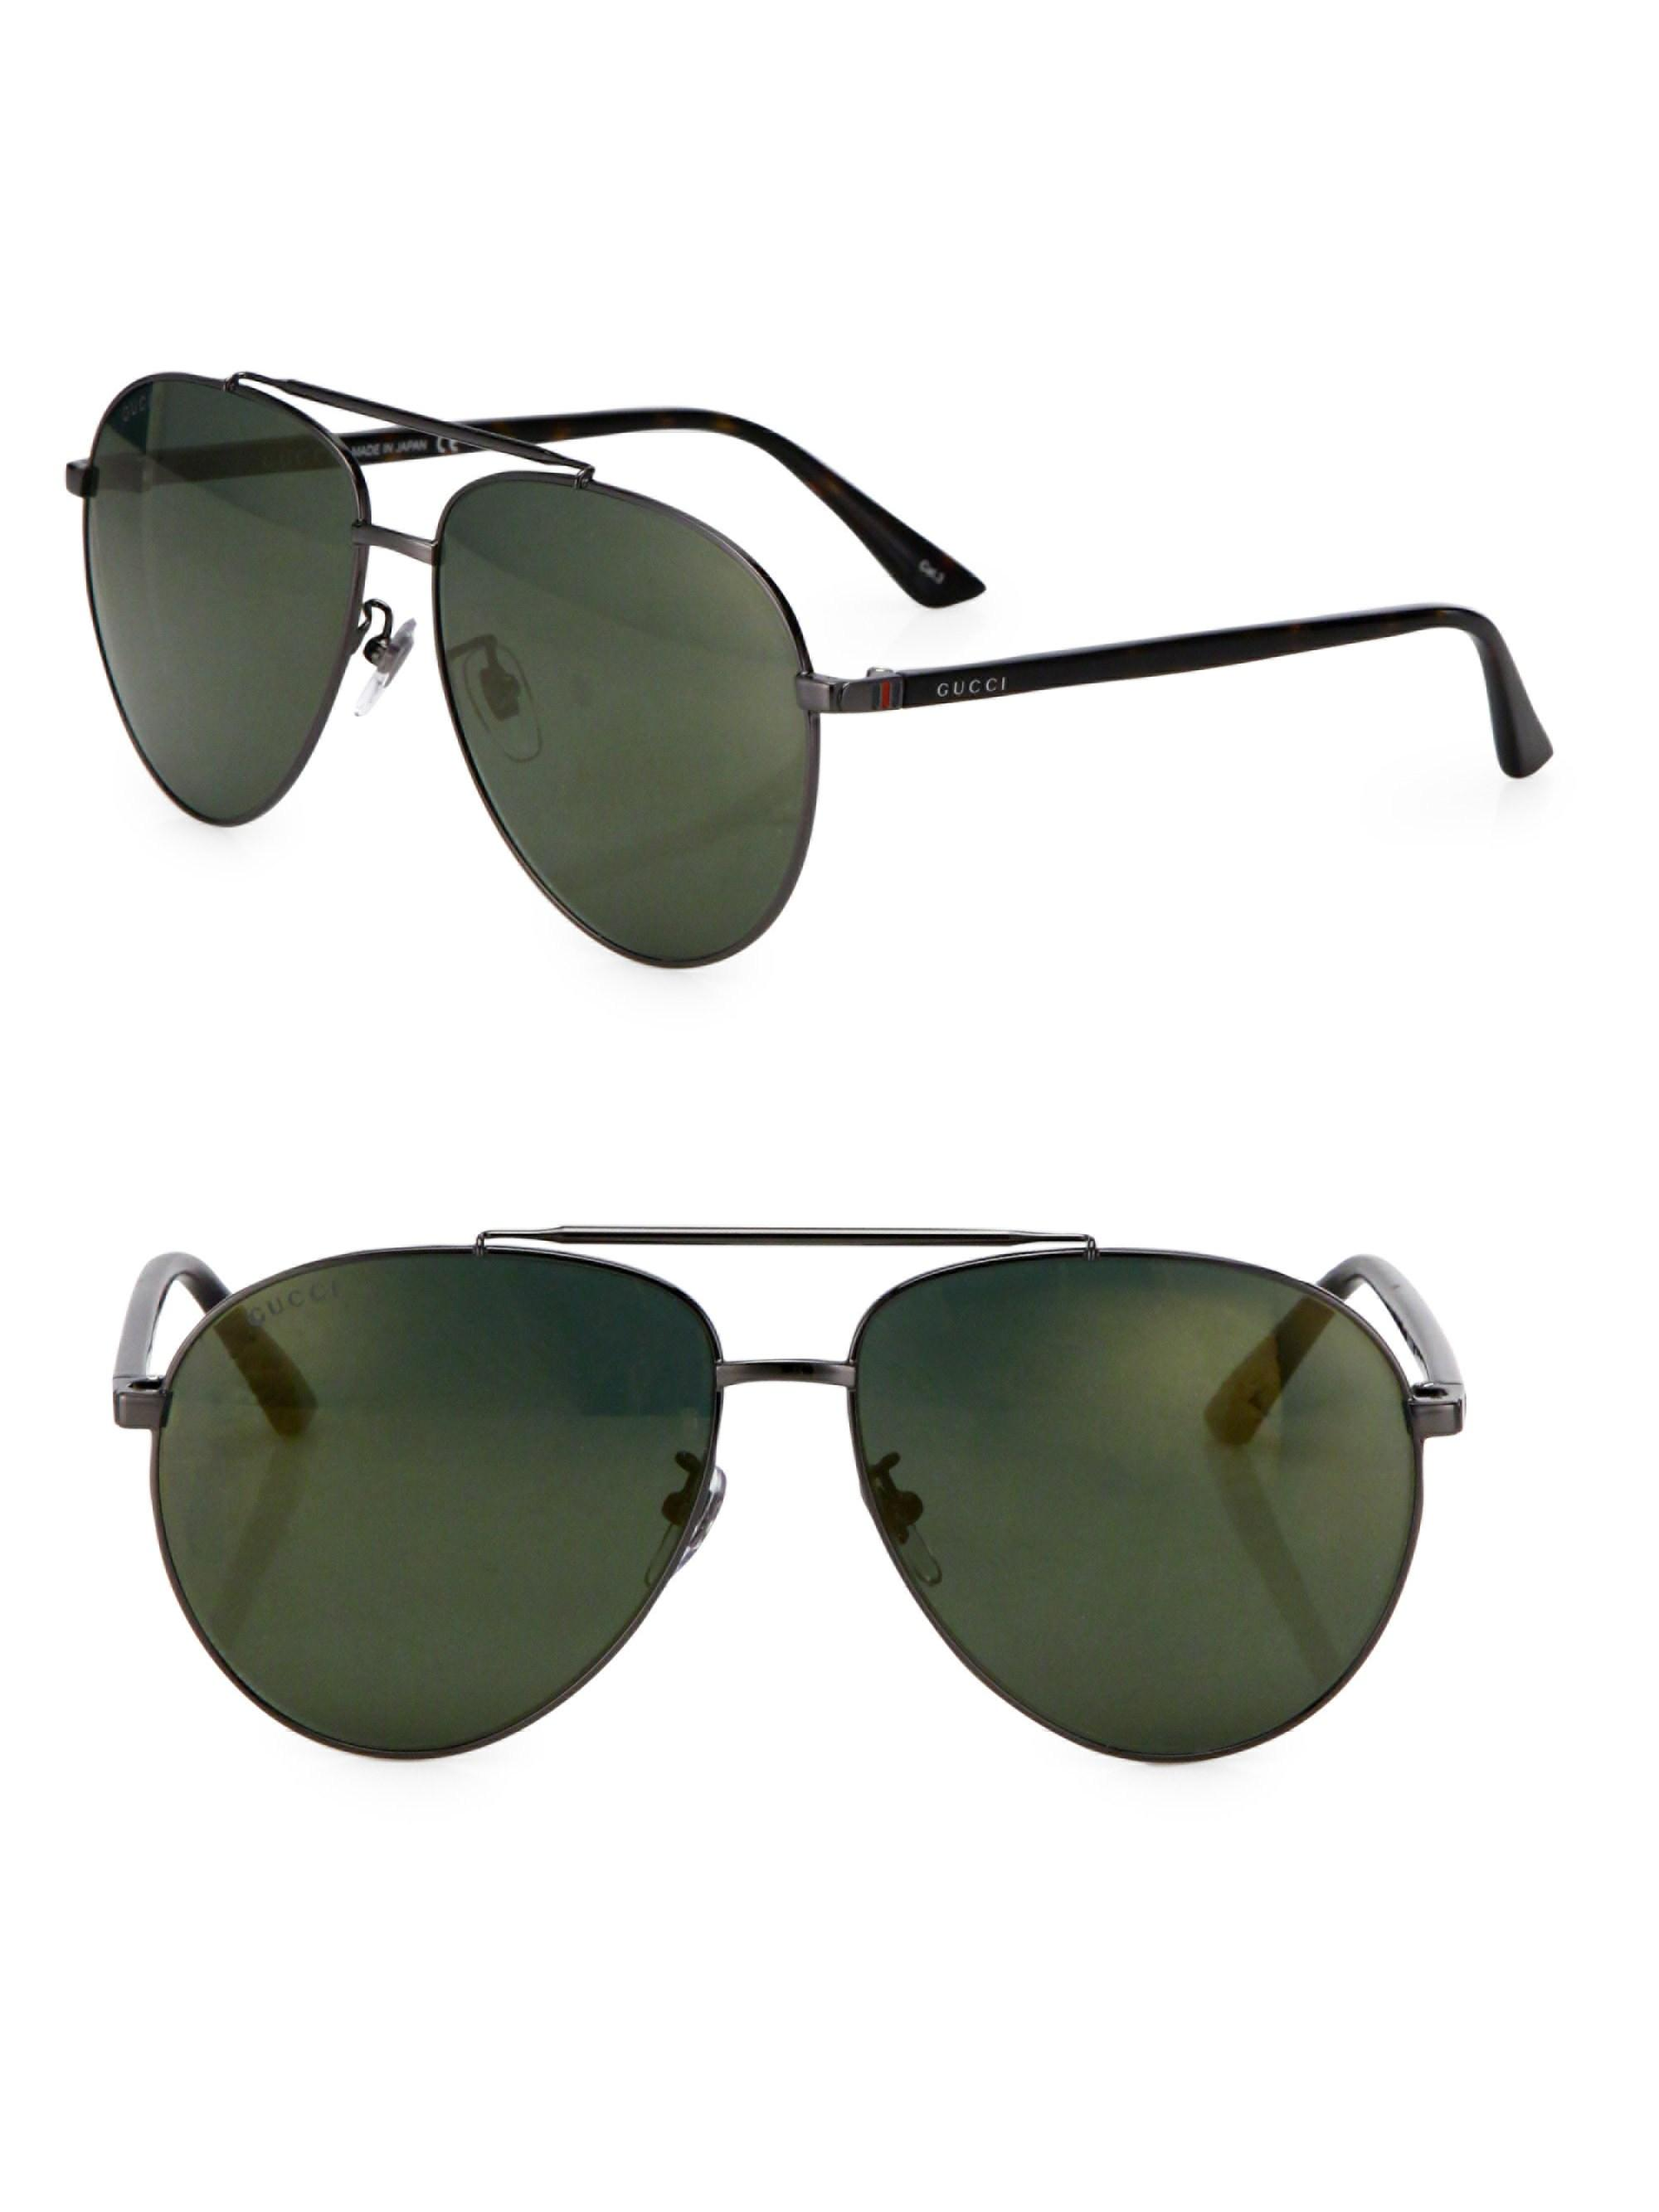 4b7dc8ded6 Lyst - Gucci 61mm Signature Logo Pilot Sunglasses in Green for Men